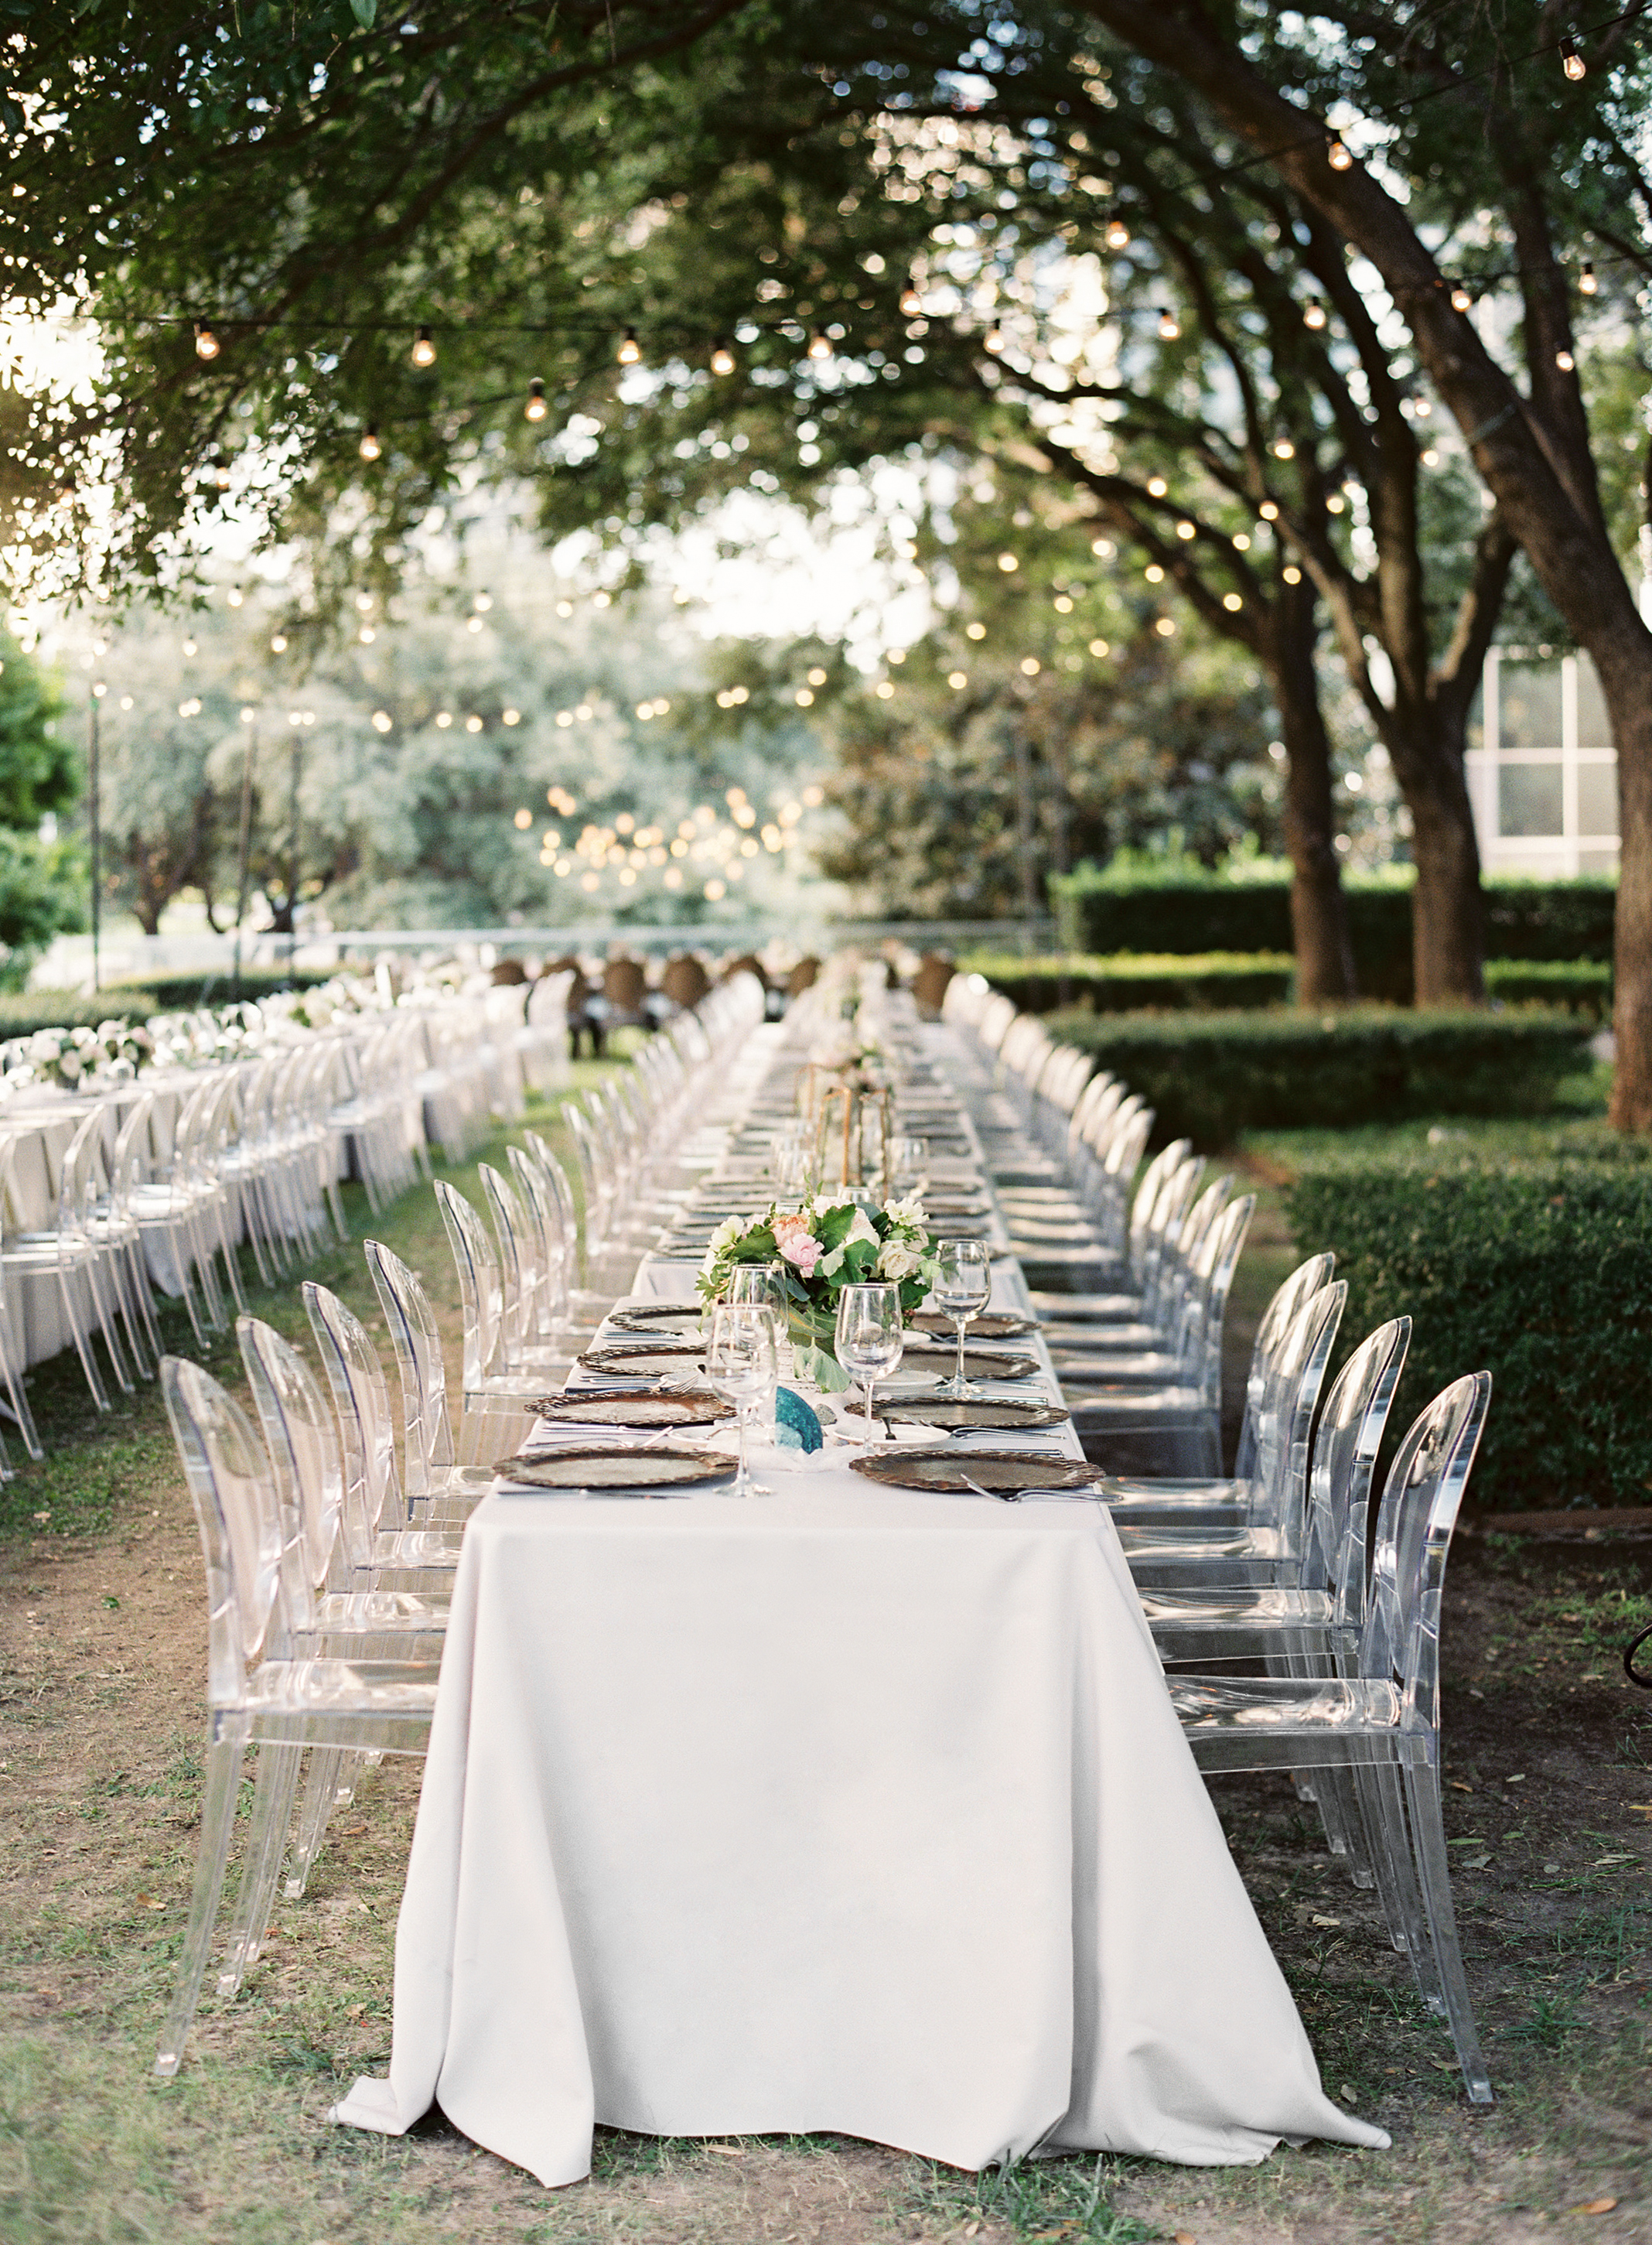 Jenna & Jon: Dallas Garden Wedding - Lindsey Brunk